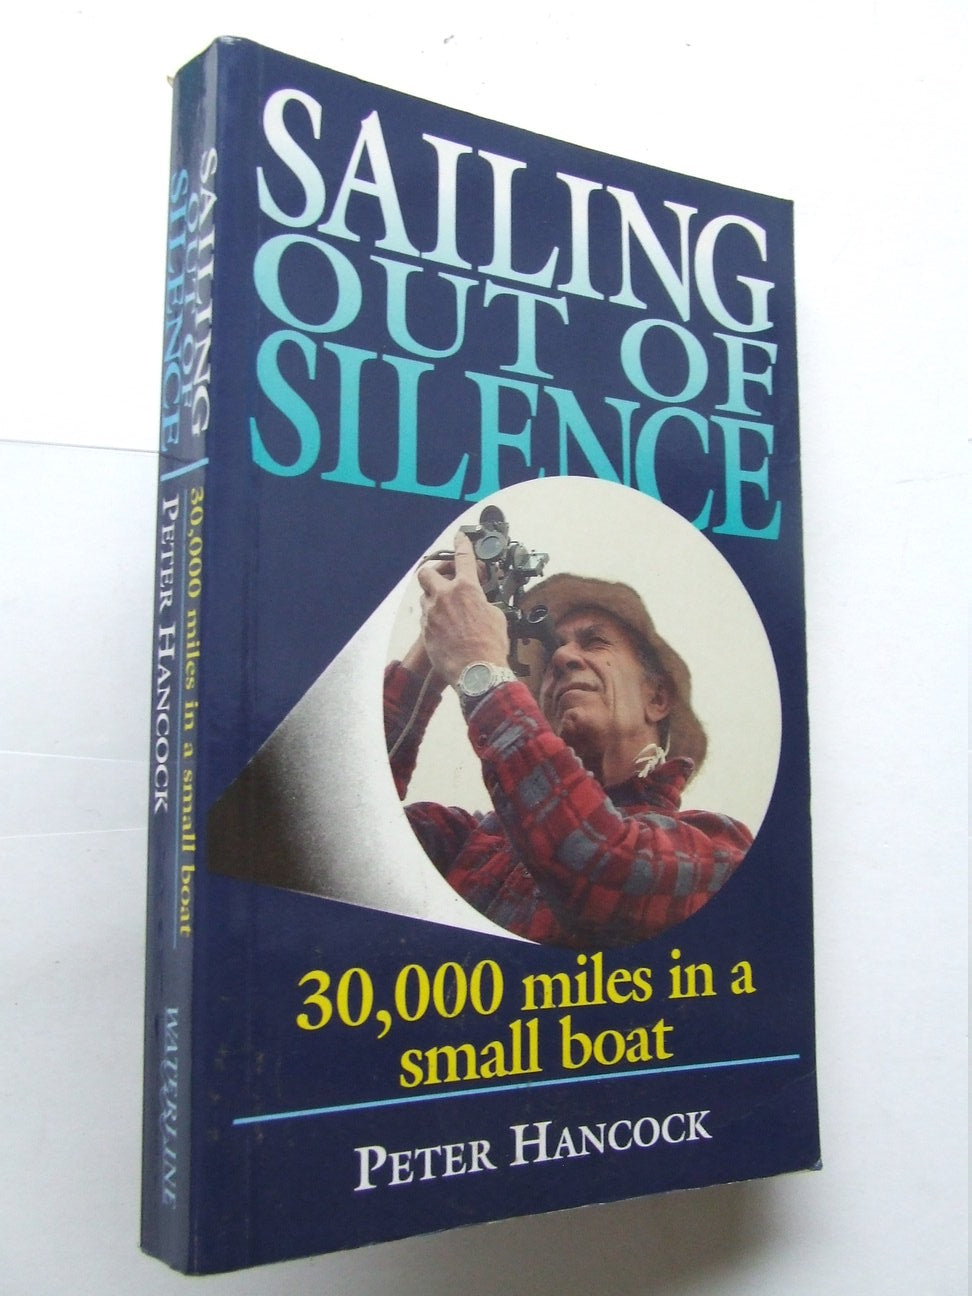 Sailing Out of Silence, 30,000 miles in a small boat